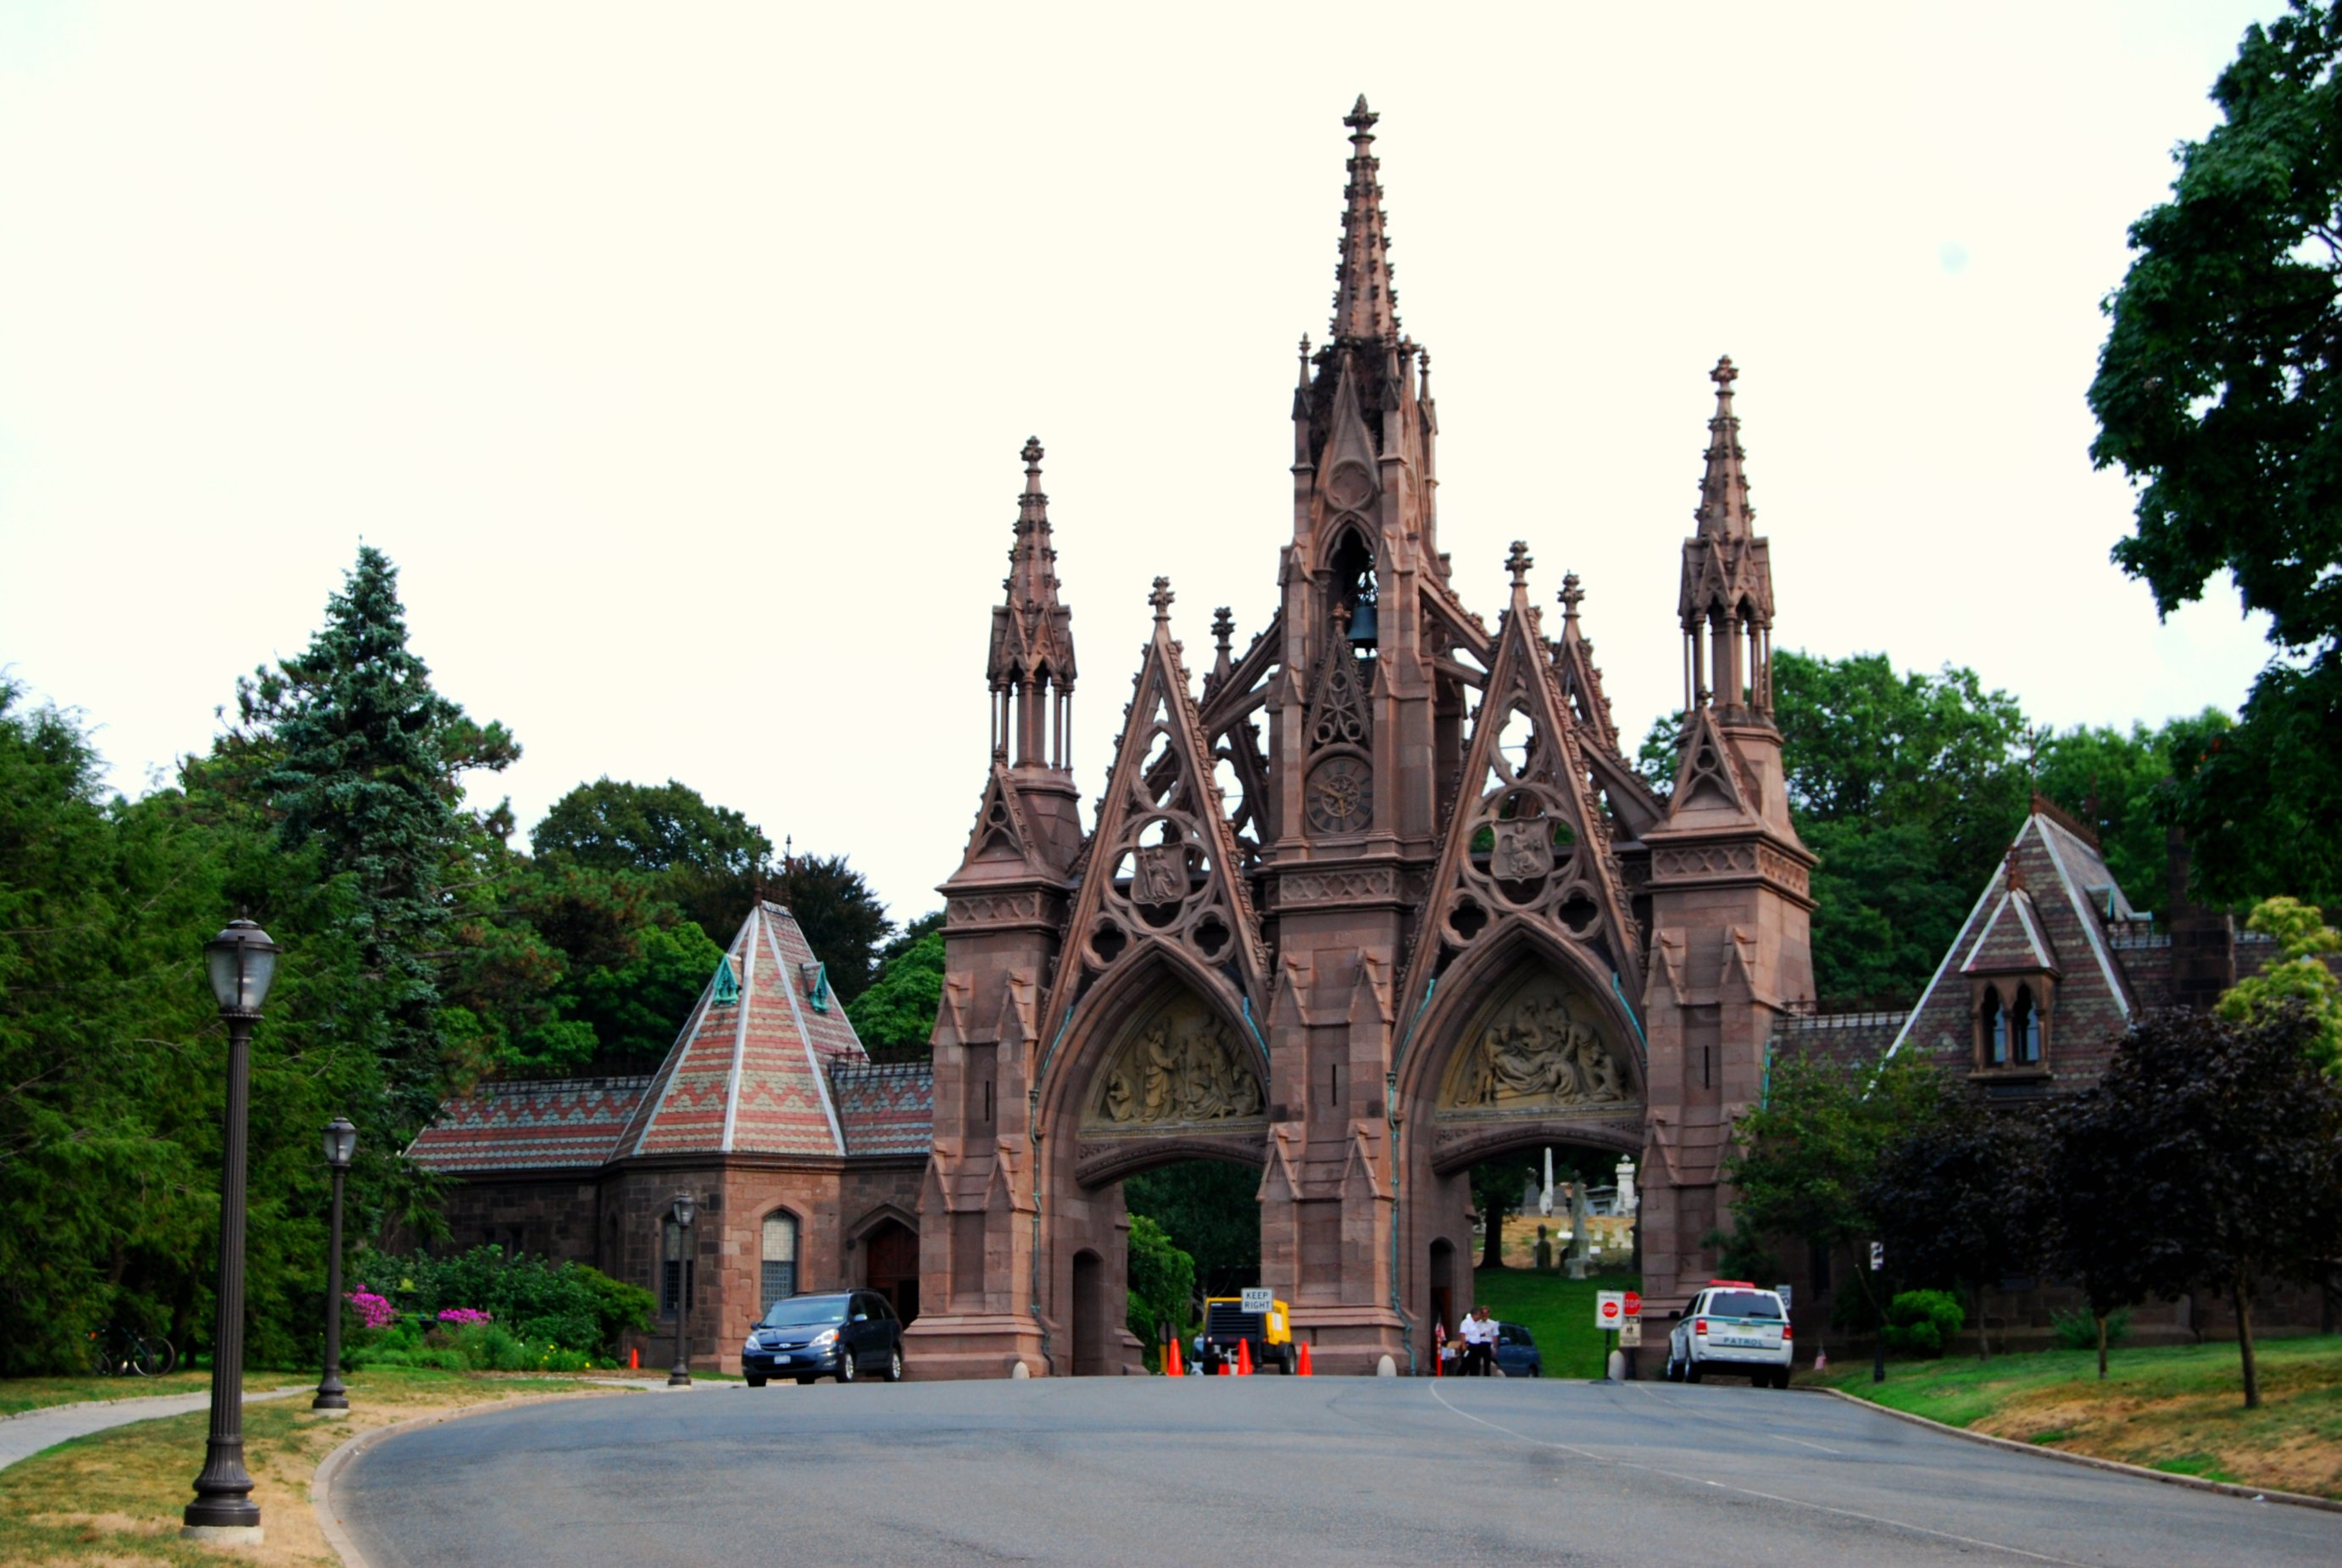 Visitors begin their journey by passing through the cemetery's Gothic main gate